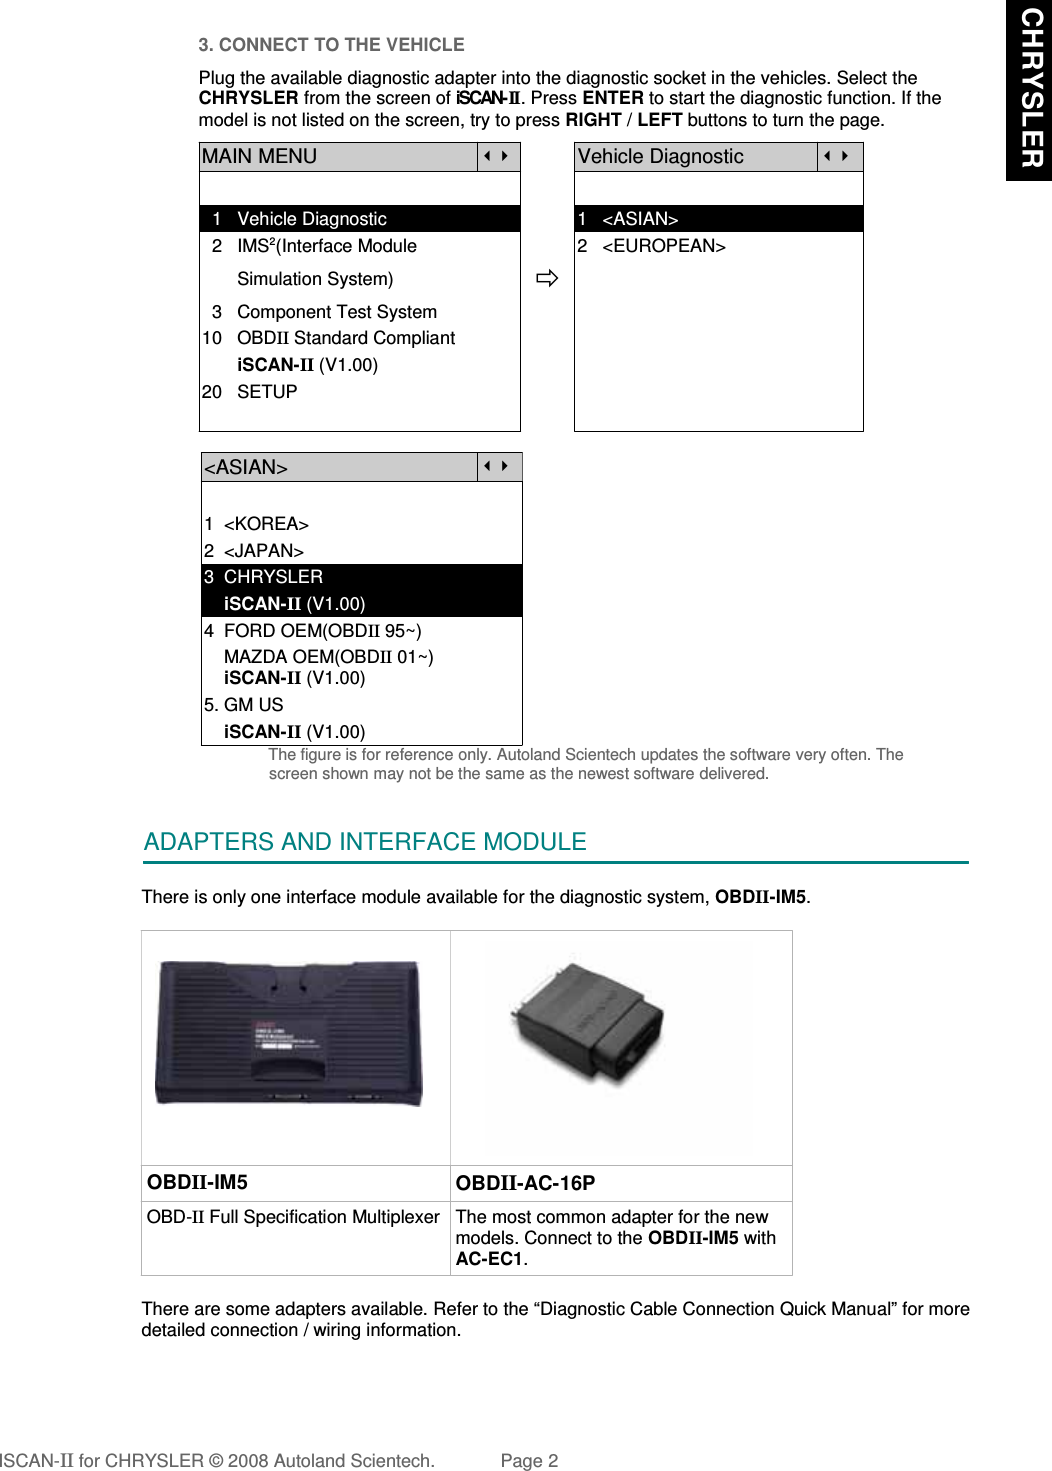 Chrysler user manualss online user manuals array chrysler computer codes user manuals array chrysler repair user manuals user manuals fandeluxe Images